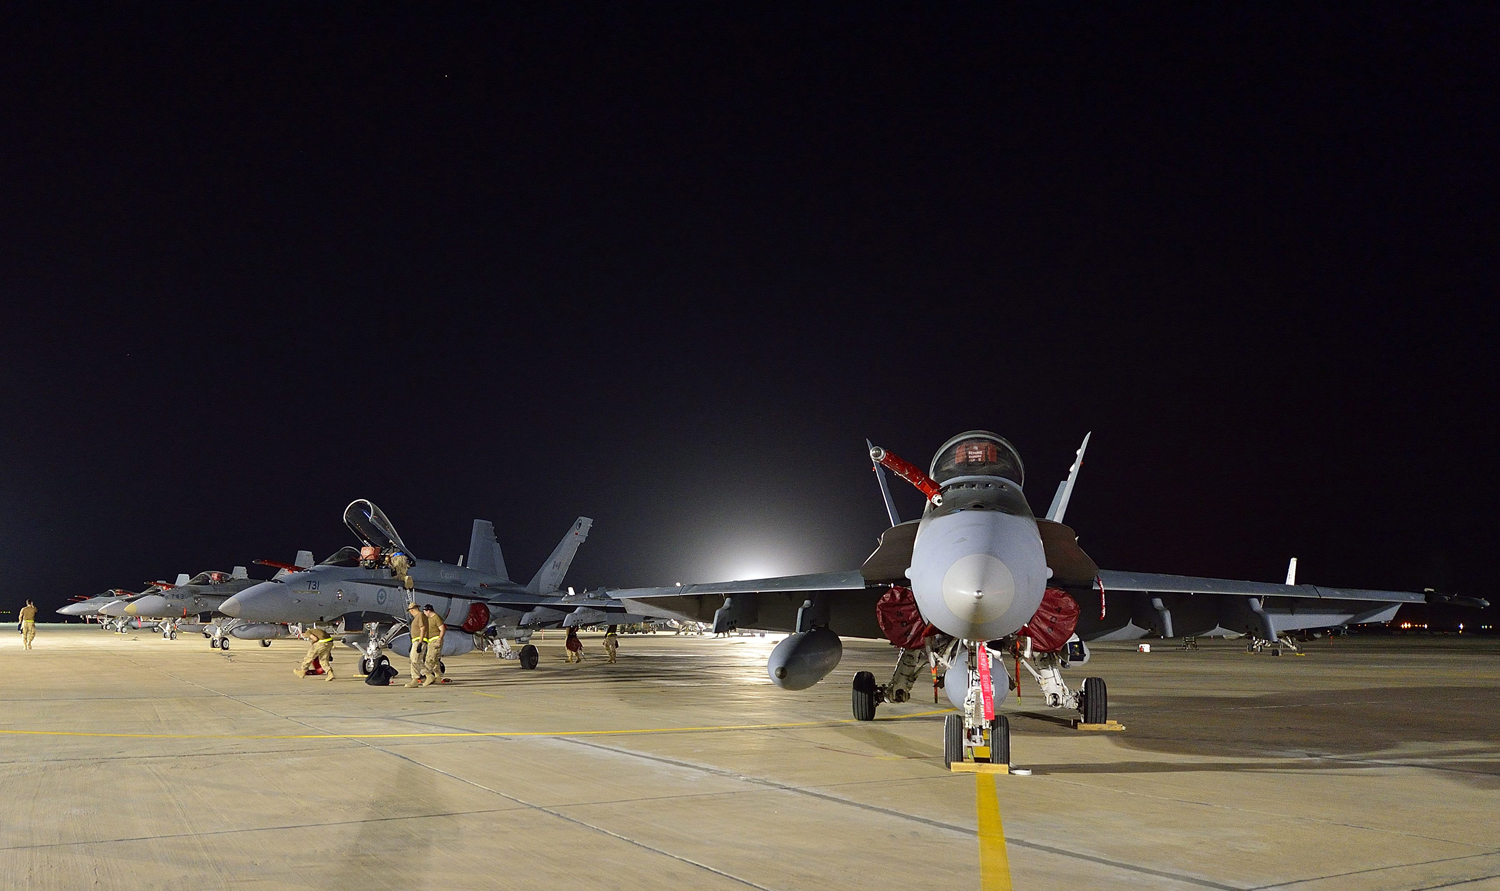 Canadian Armed Forces CF-18 fighter jets arrive at the Canadian Air Task Force Flight Operations Area in Kuwait on October 28, 2014 .